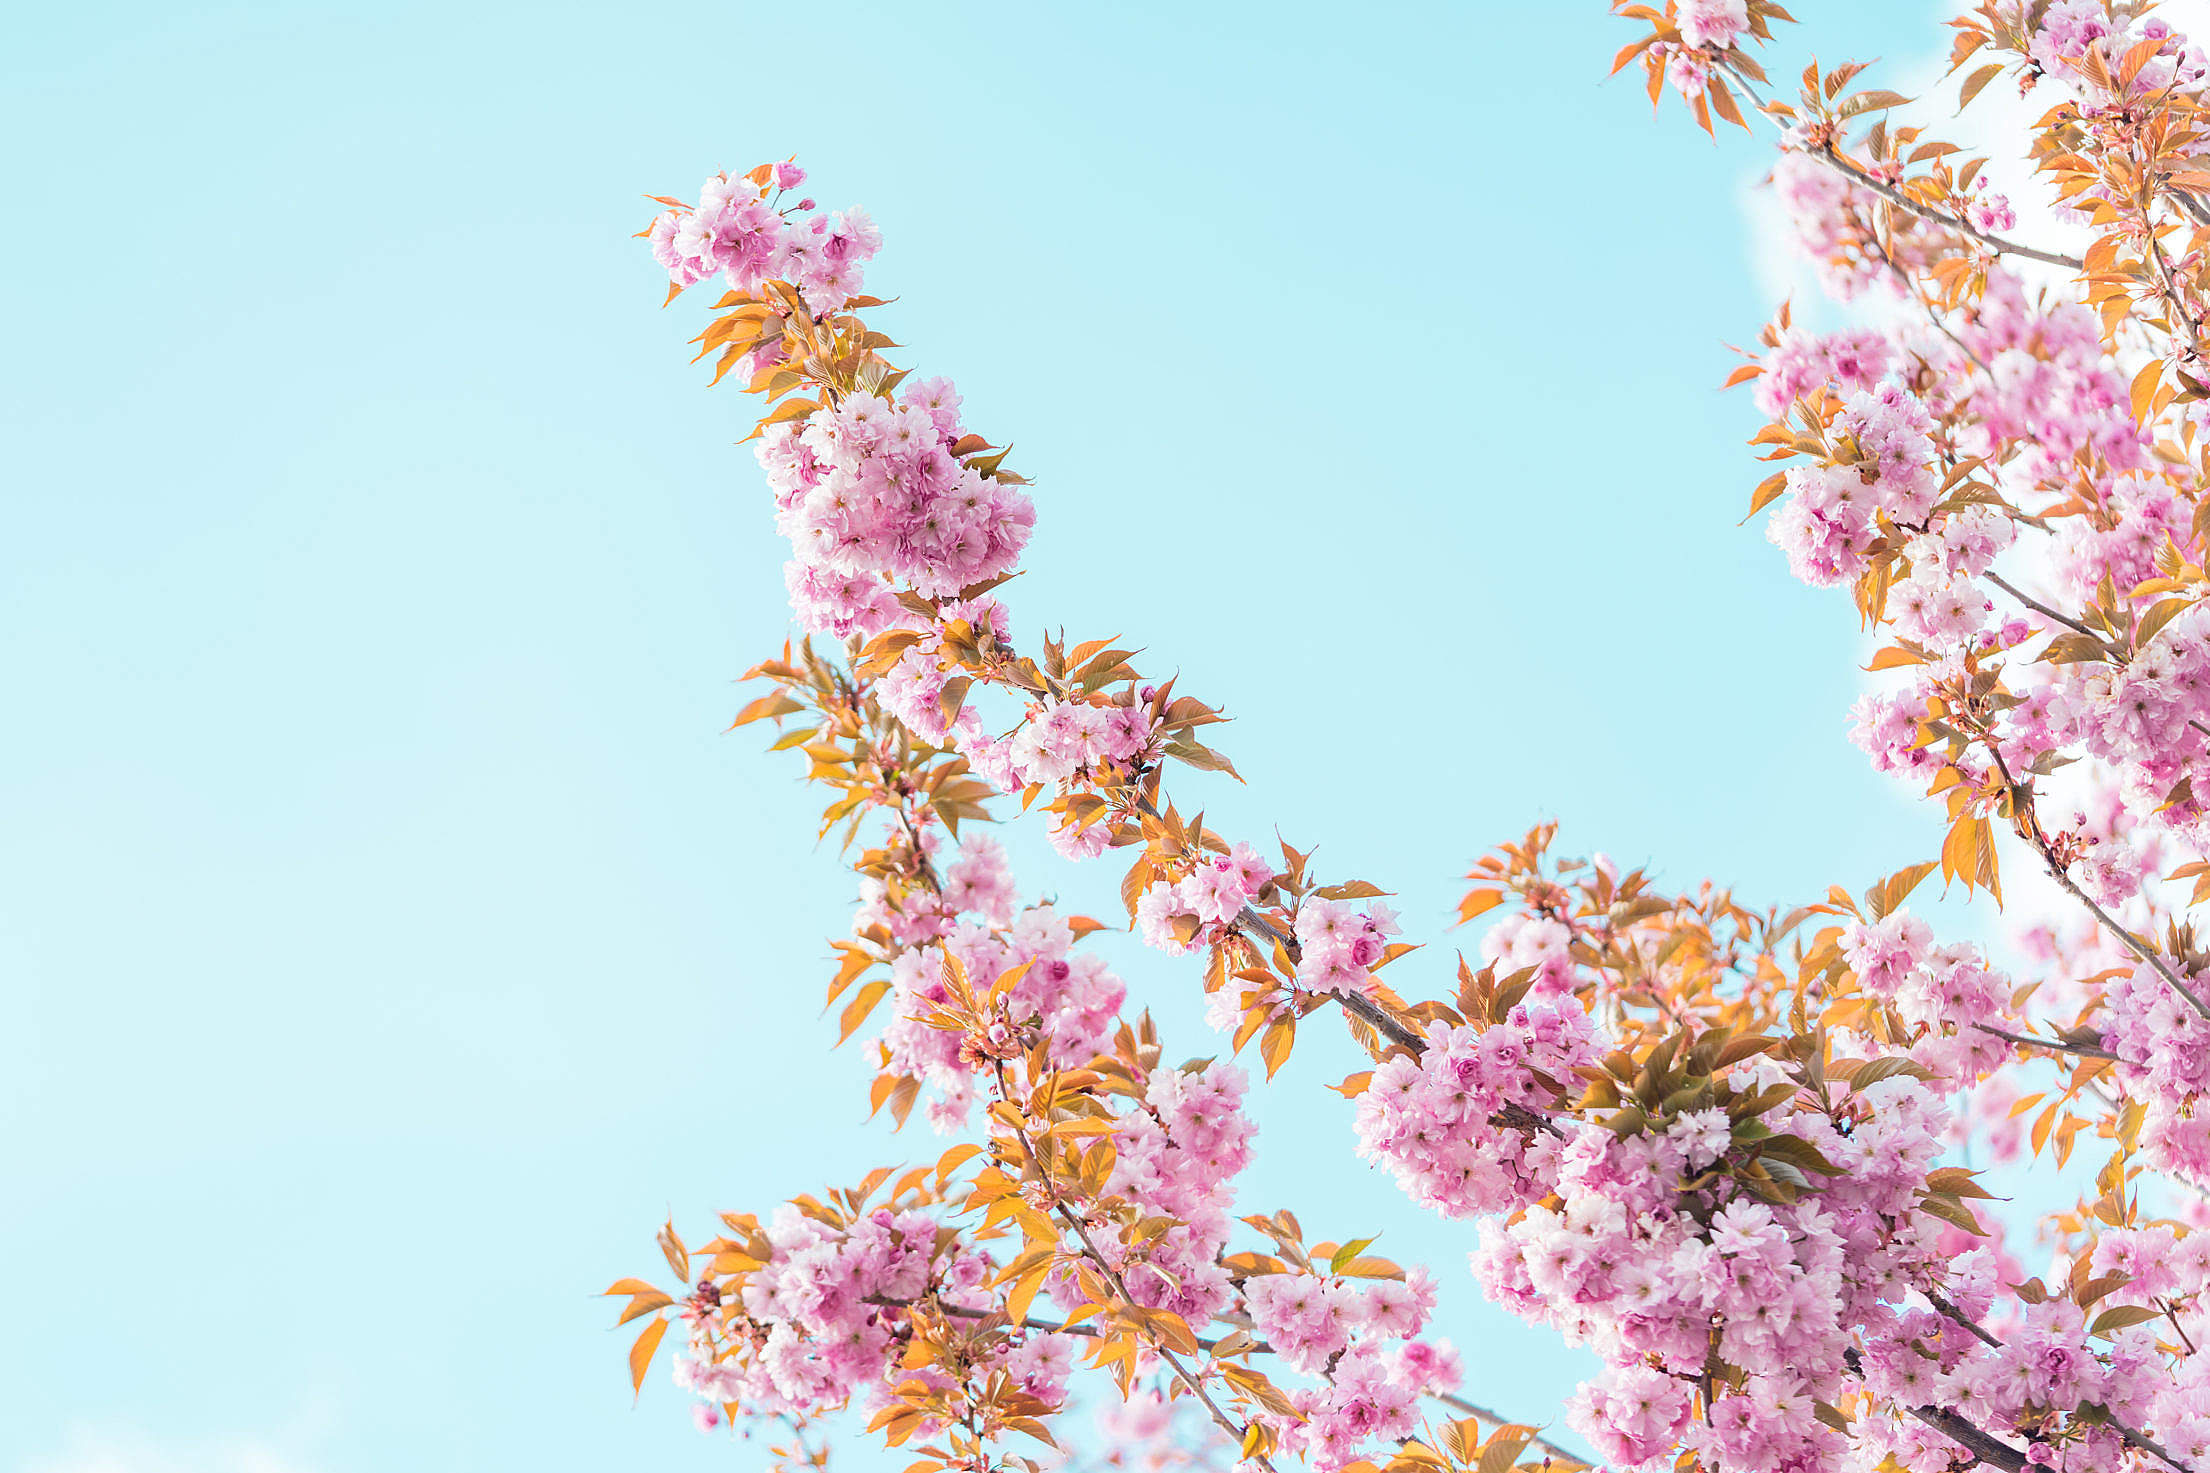 Spring Cherry Tree Blossoms Free Stock Photo